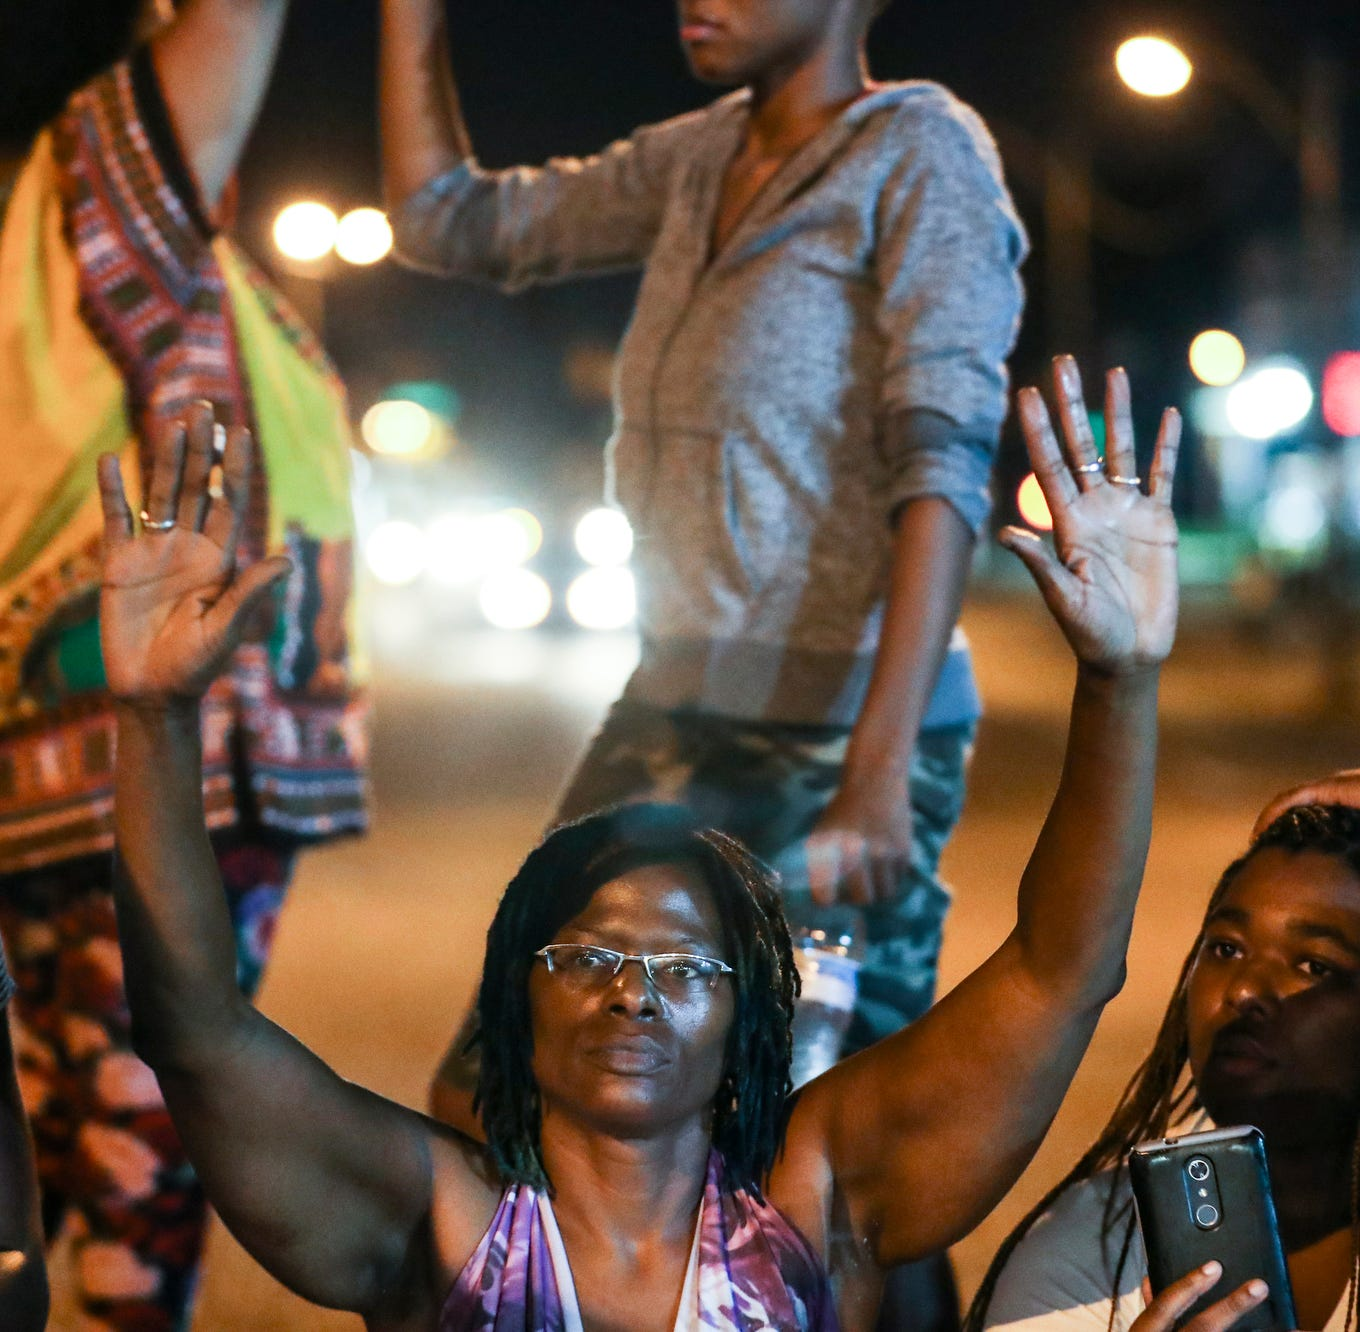 No charges against Memphis police officers in Martavious Banks shooting, Shelby County DA says